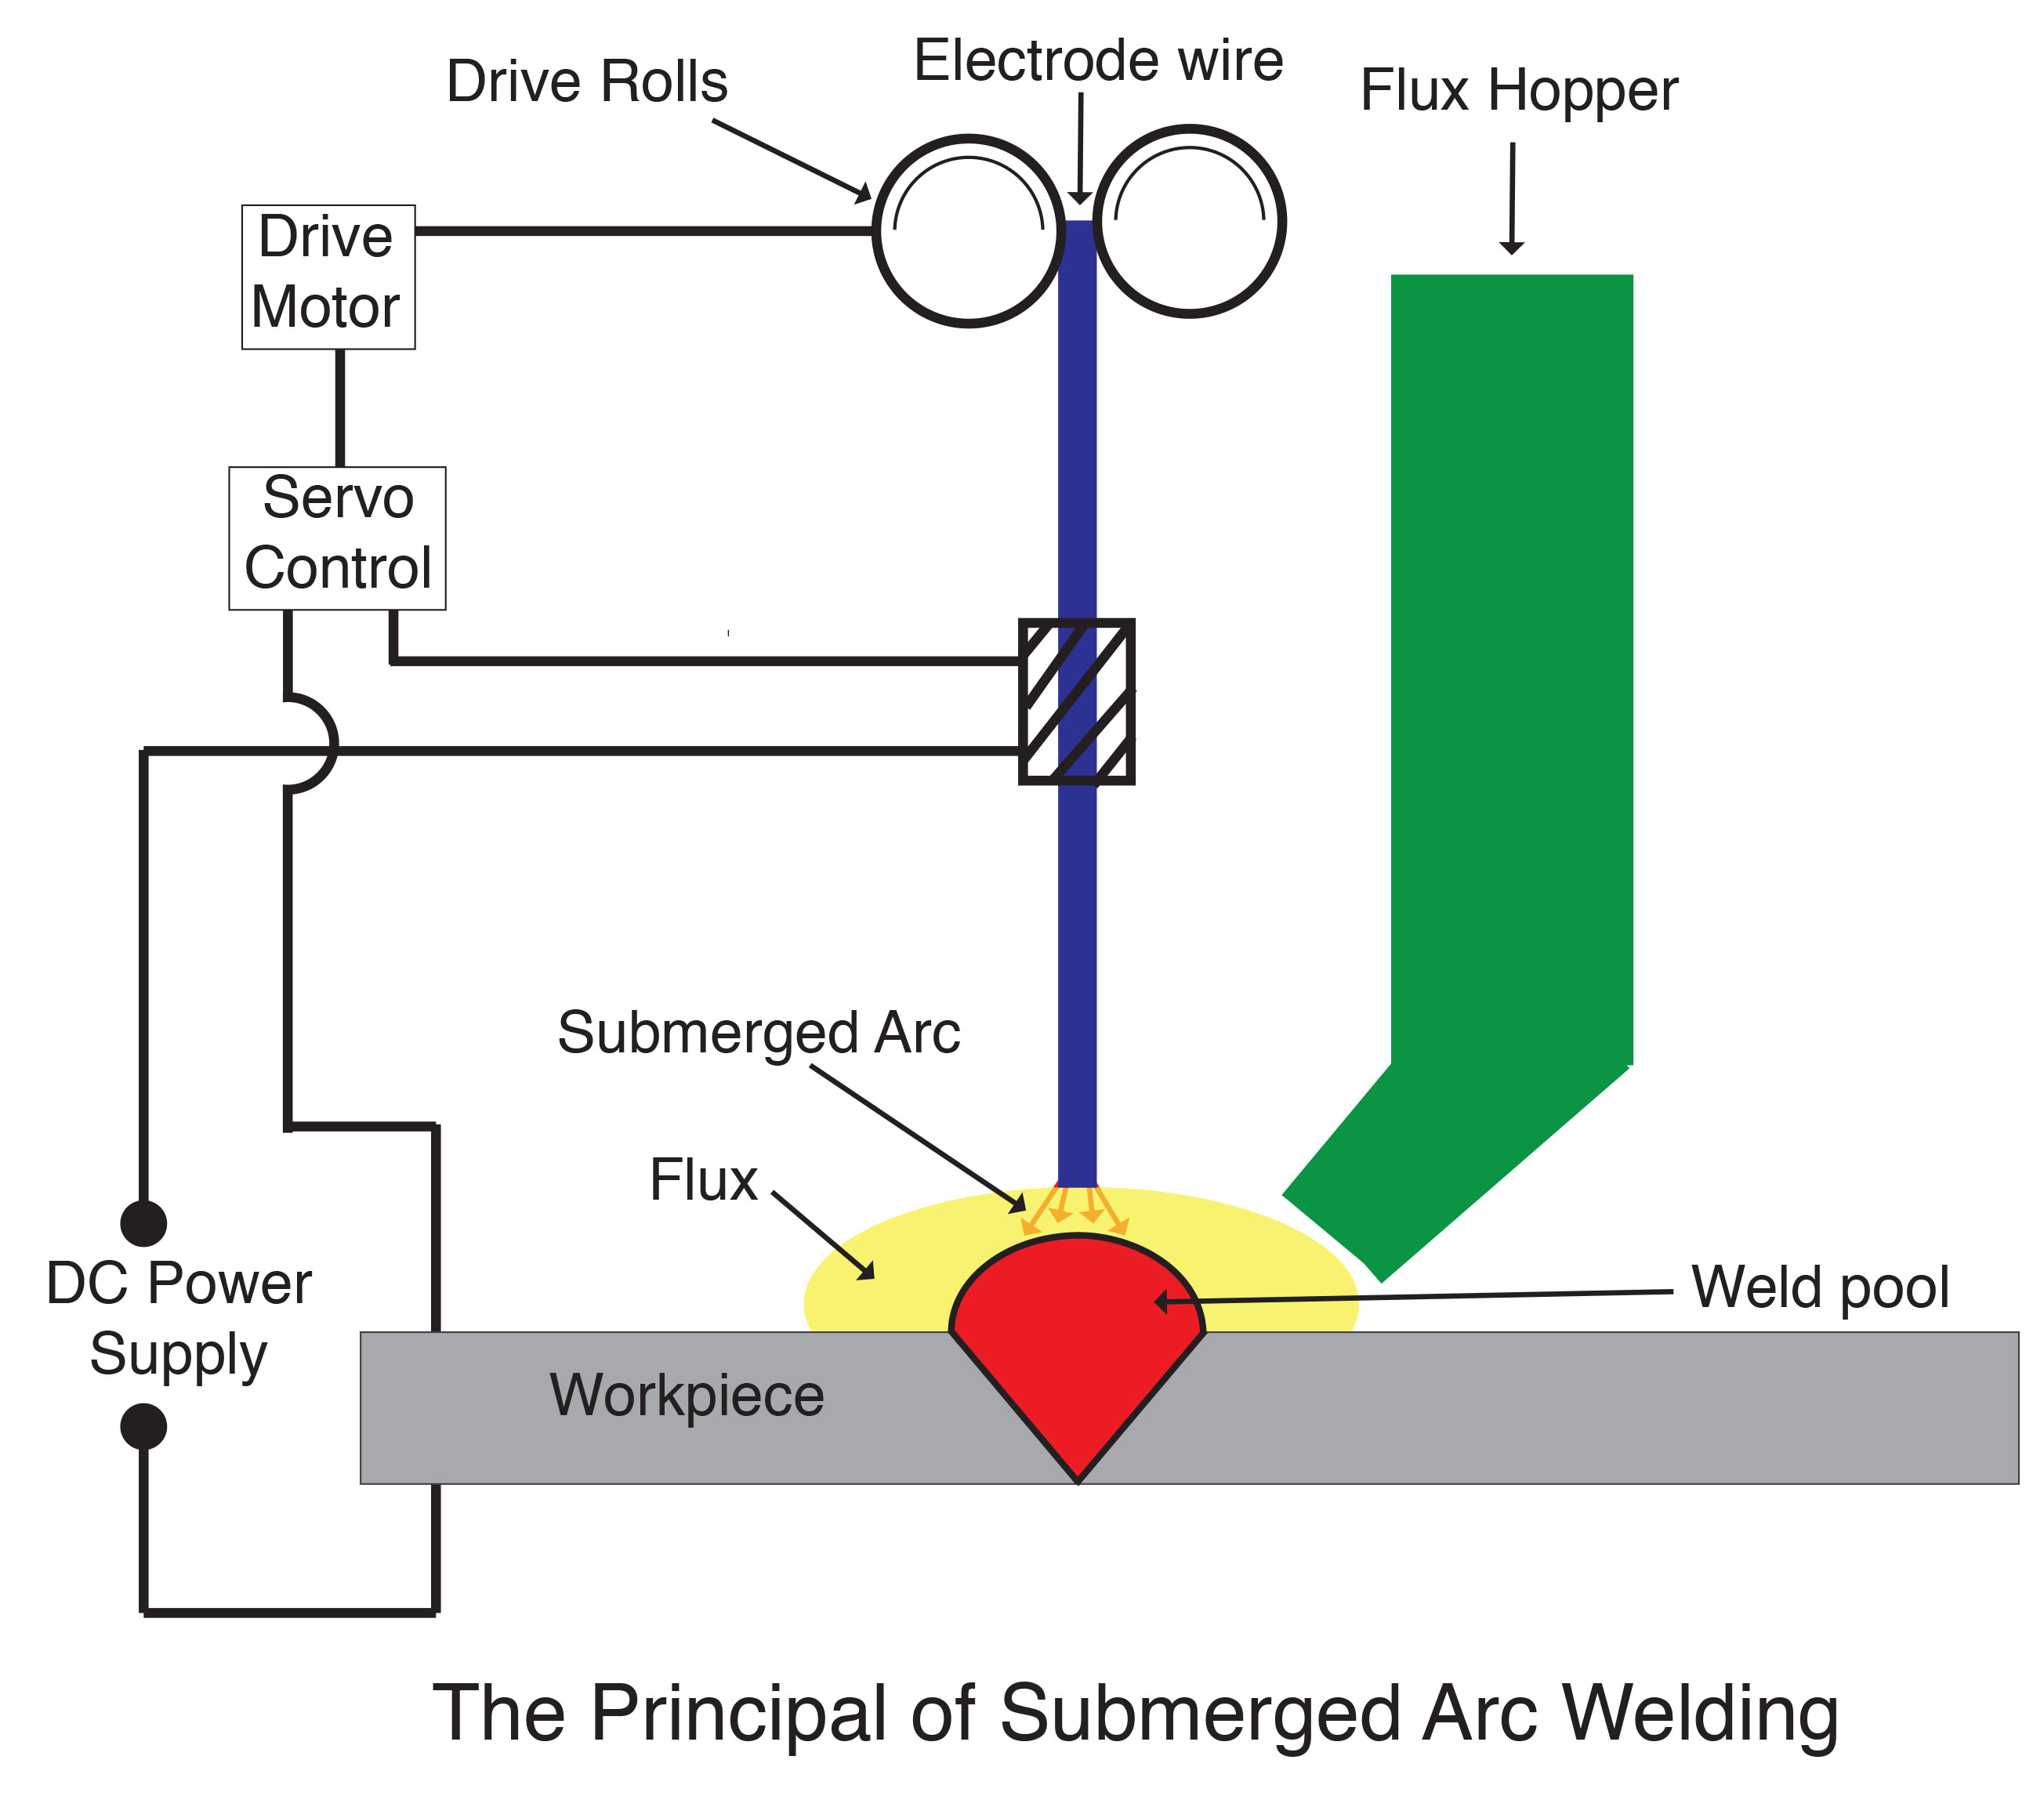 The Principal of Submerged Arc Welding